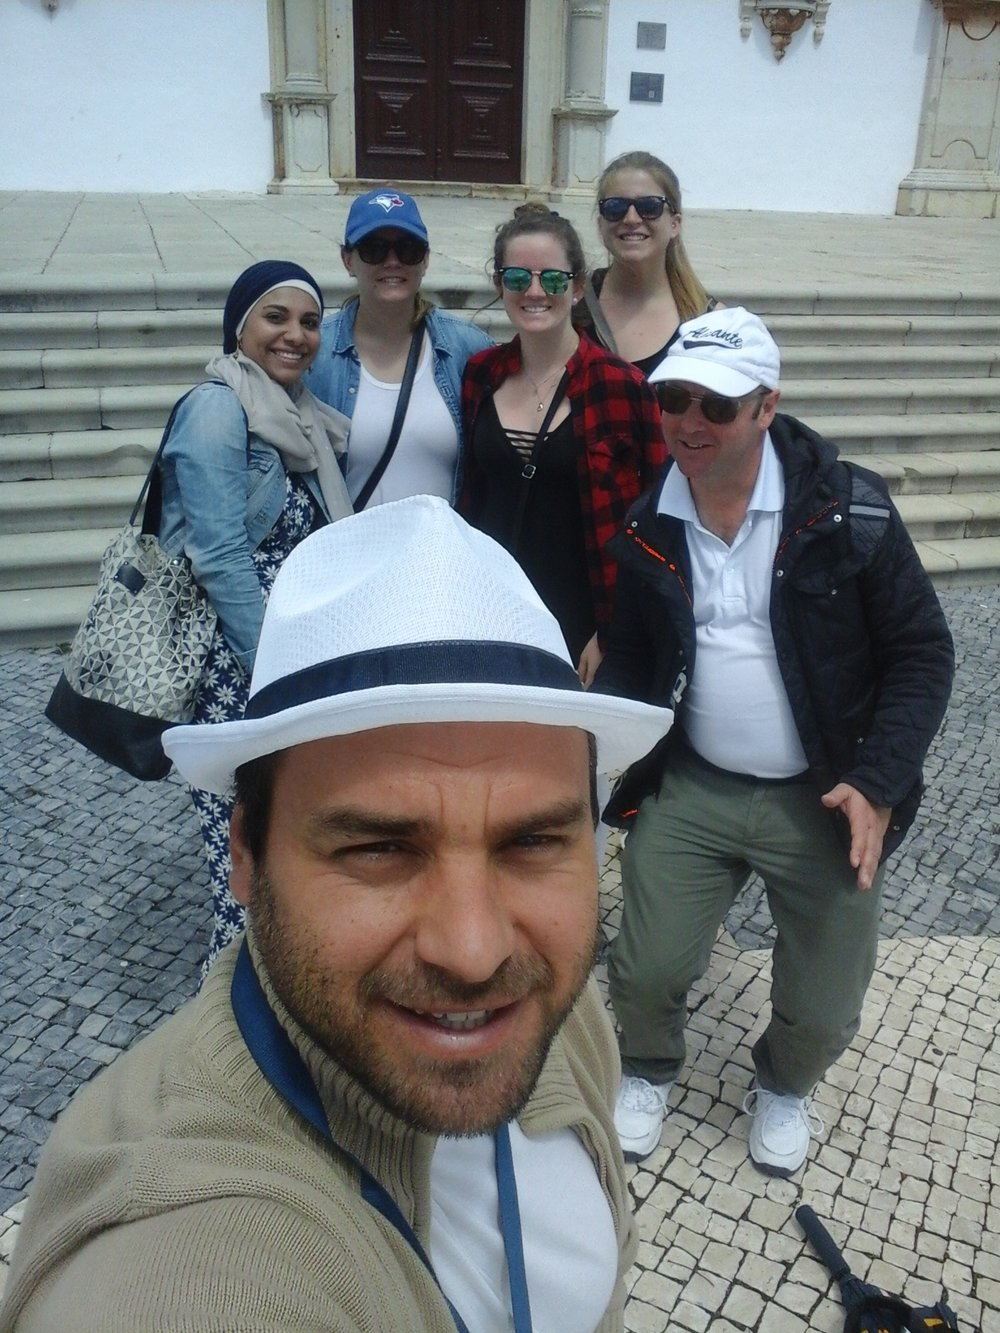 Group selfie with the walking tour